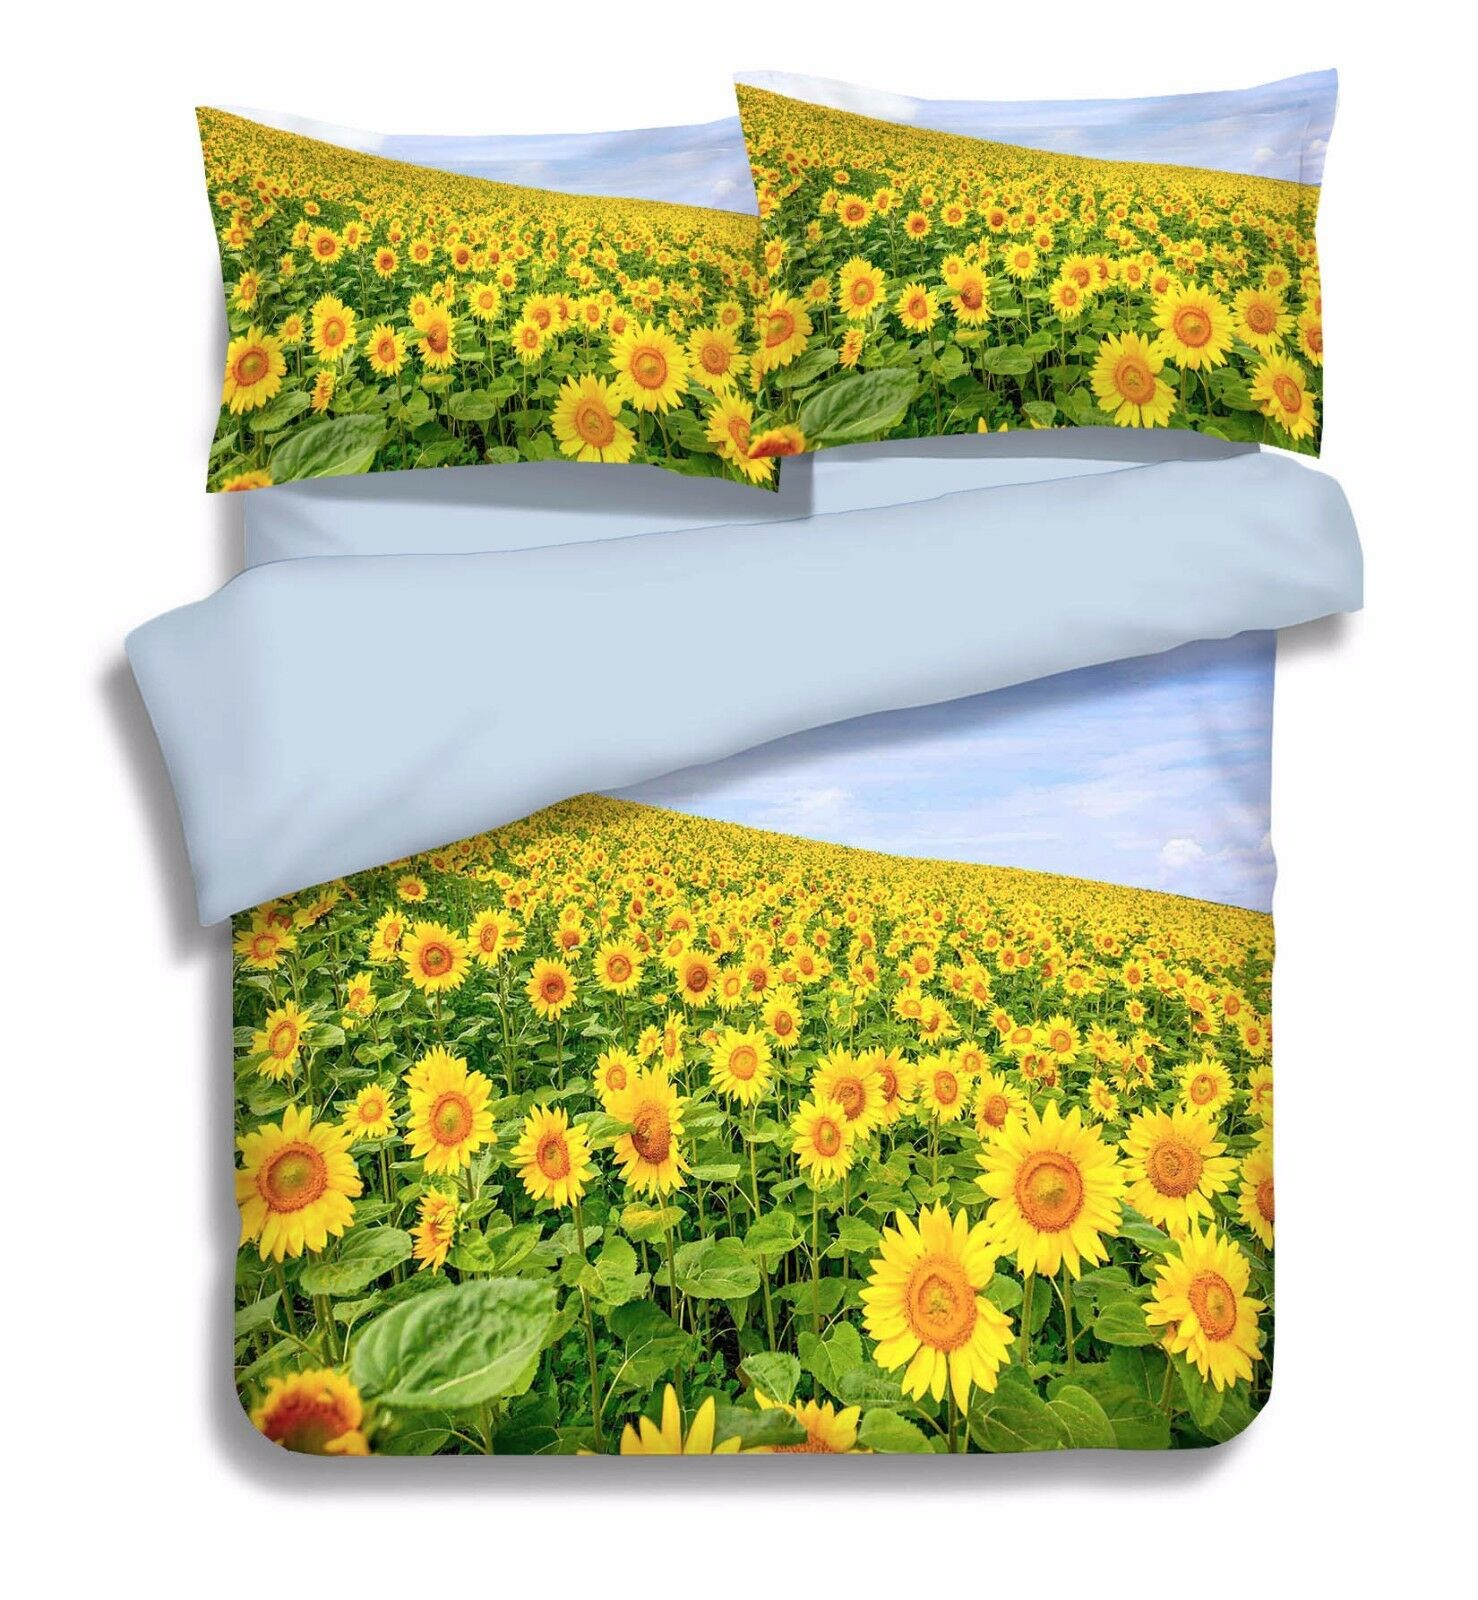 3D Sunflowers 886 Bed Pillowcases Quilt Duvet Cover Set Single Queen UK Carly